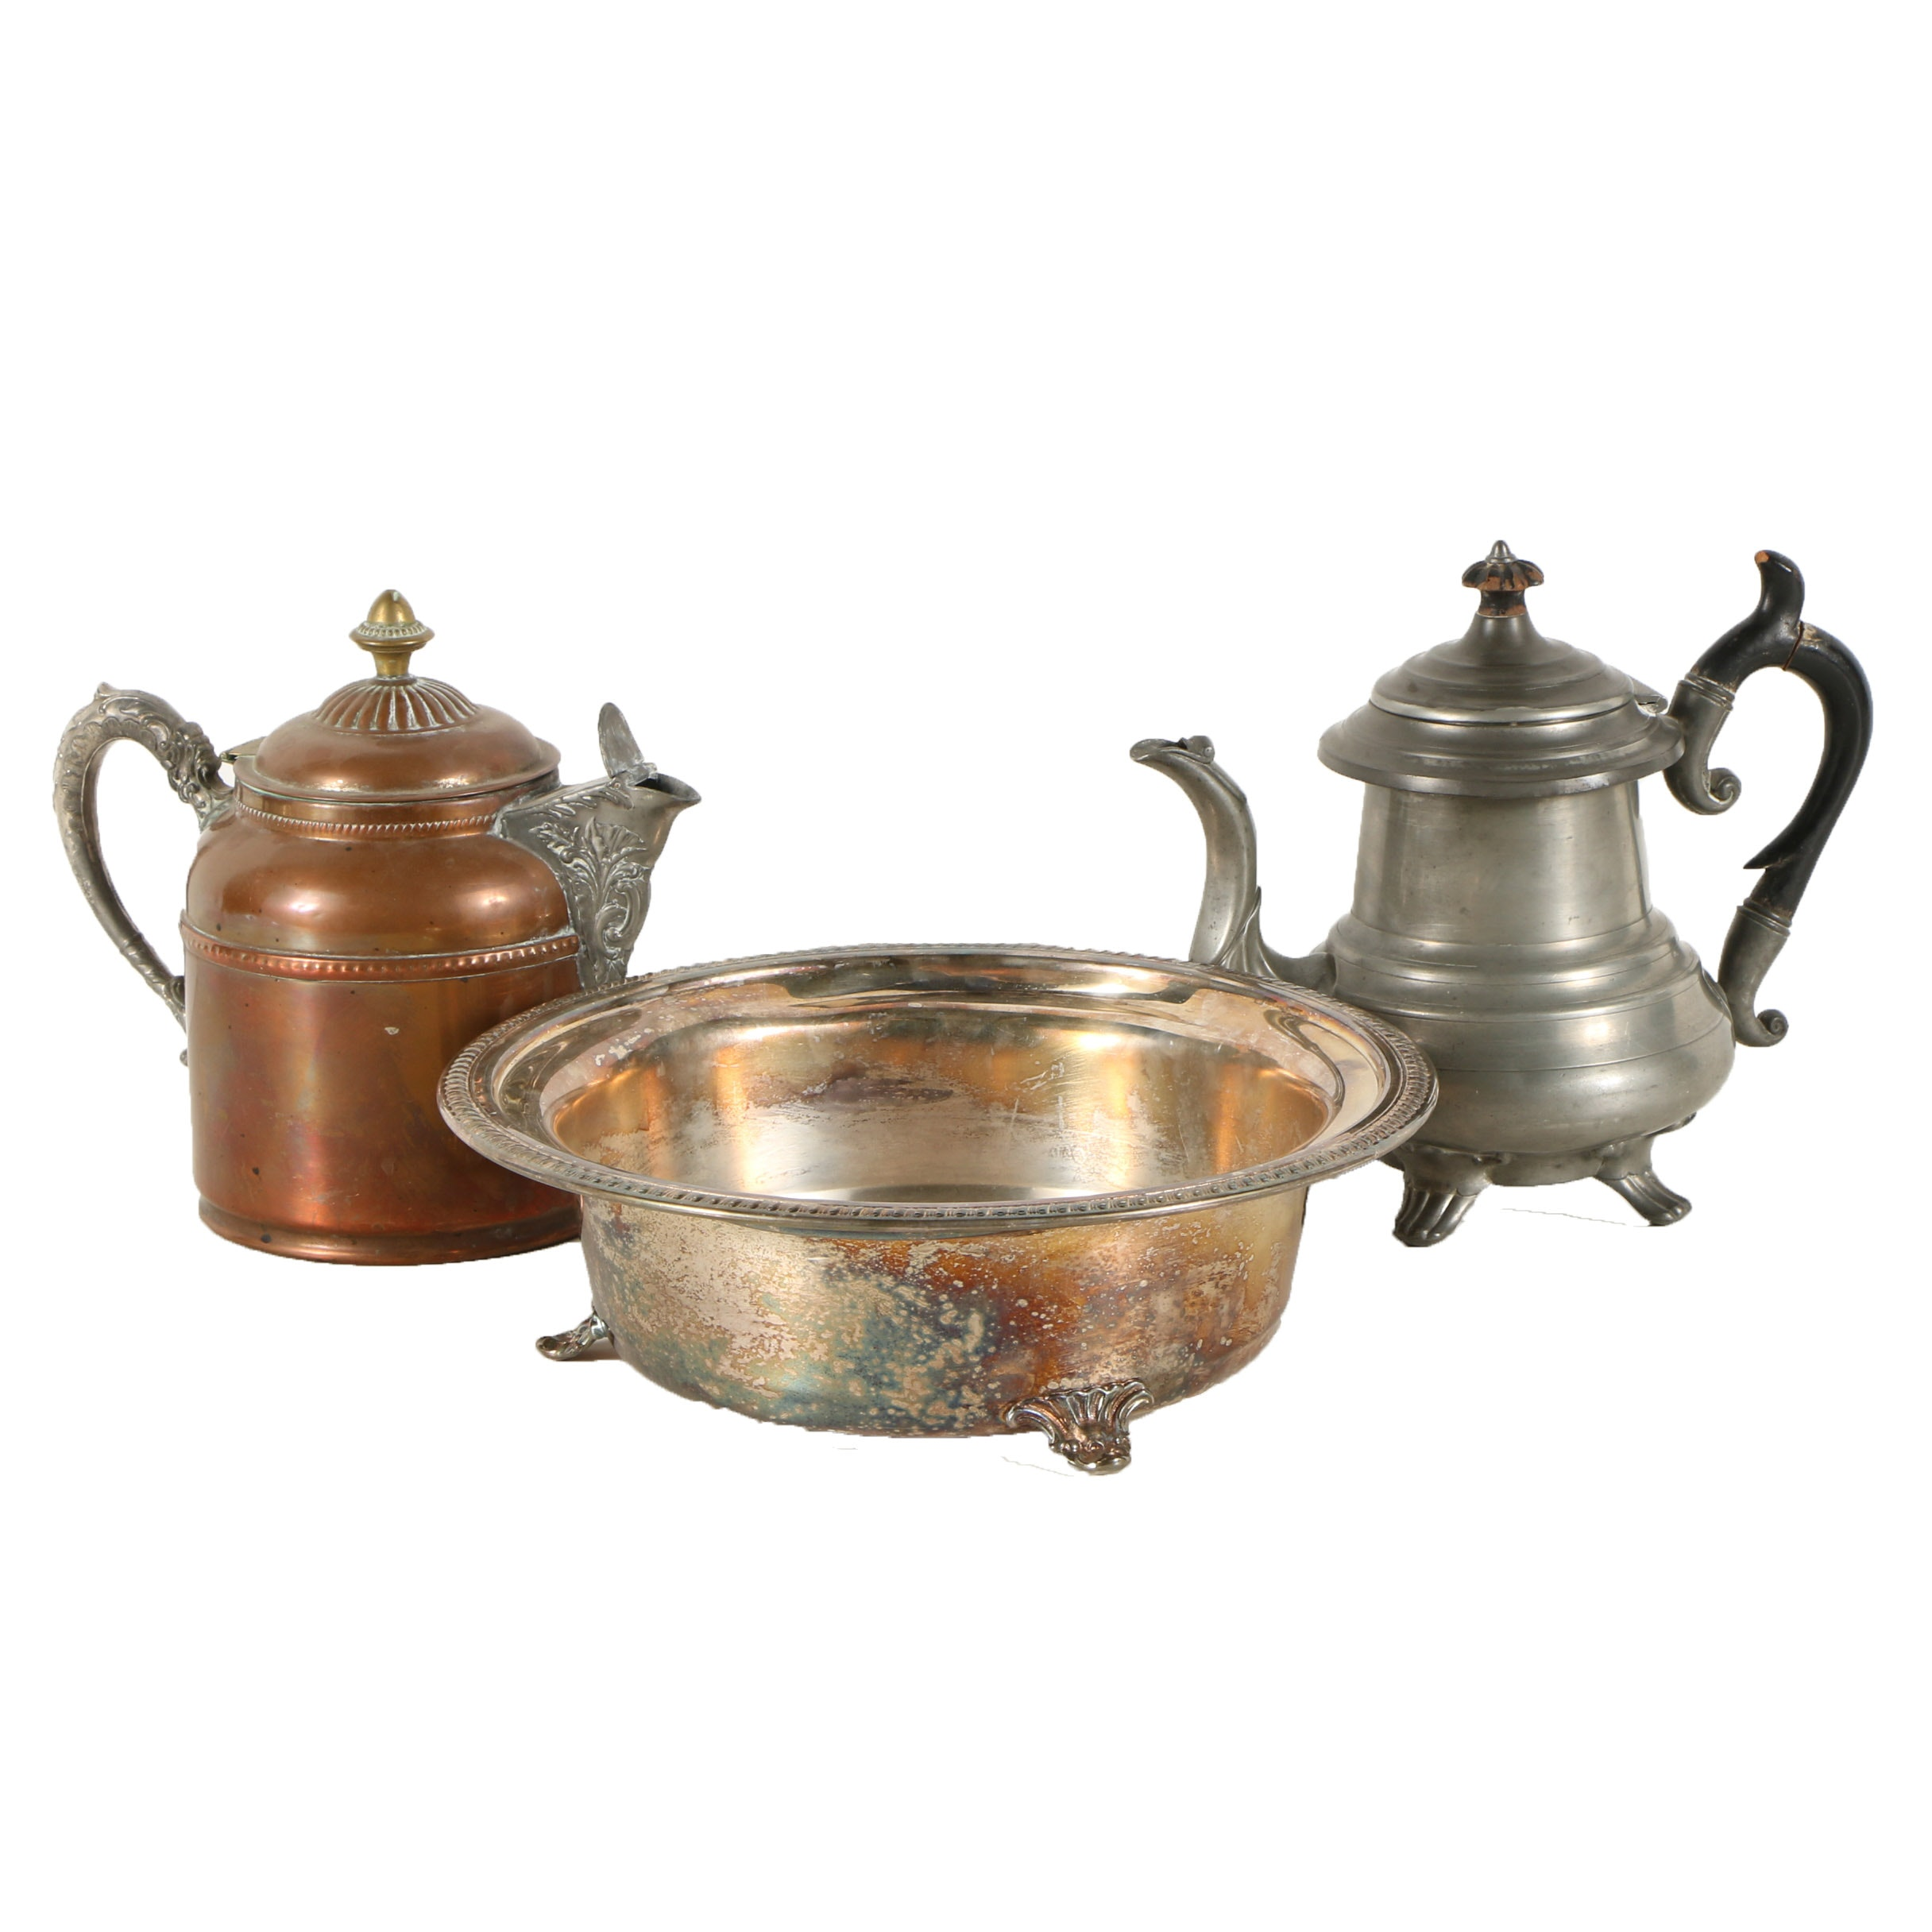 Copper and Pewter Pitchers and Metal Basin